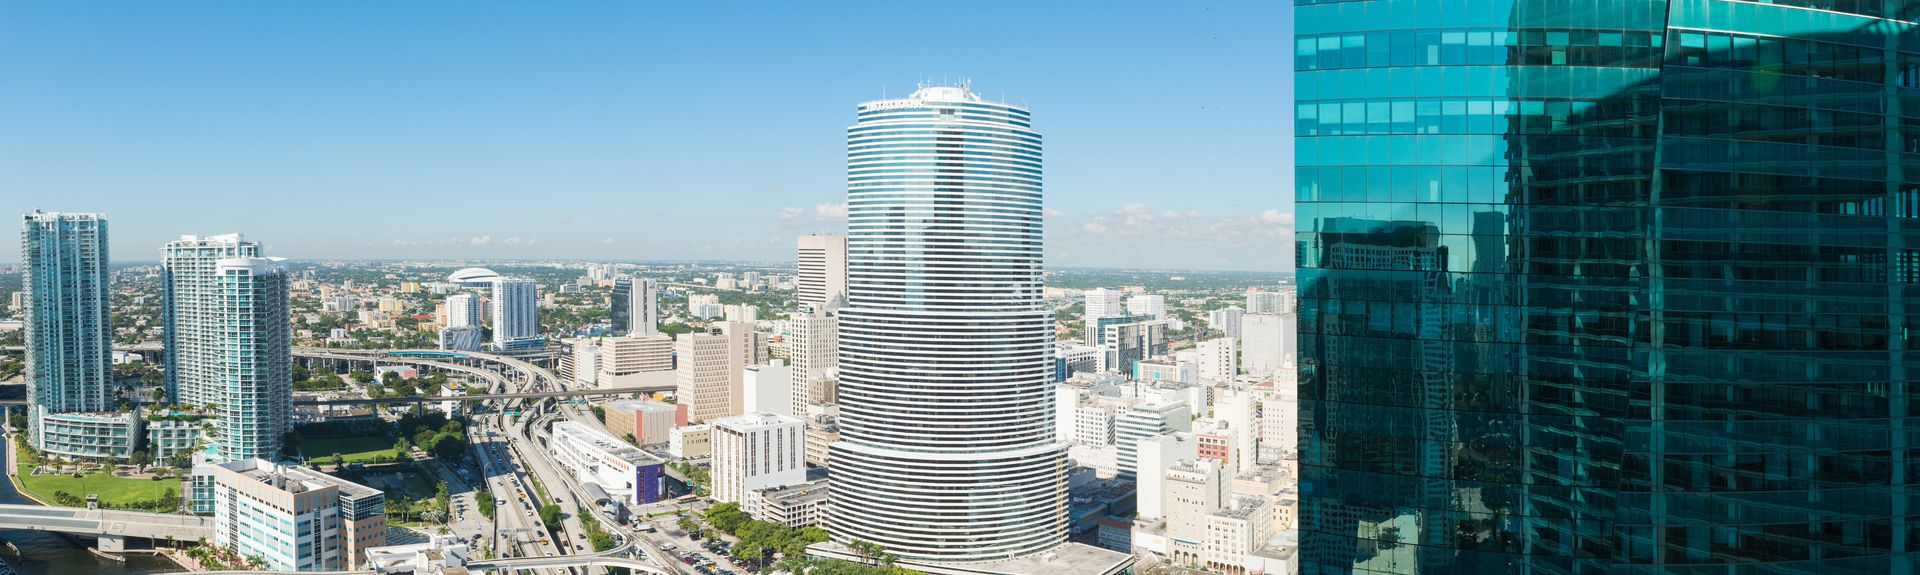 Brickell, Miami, Florida, USA